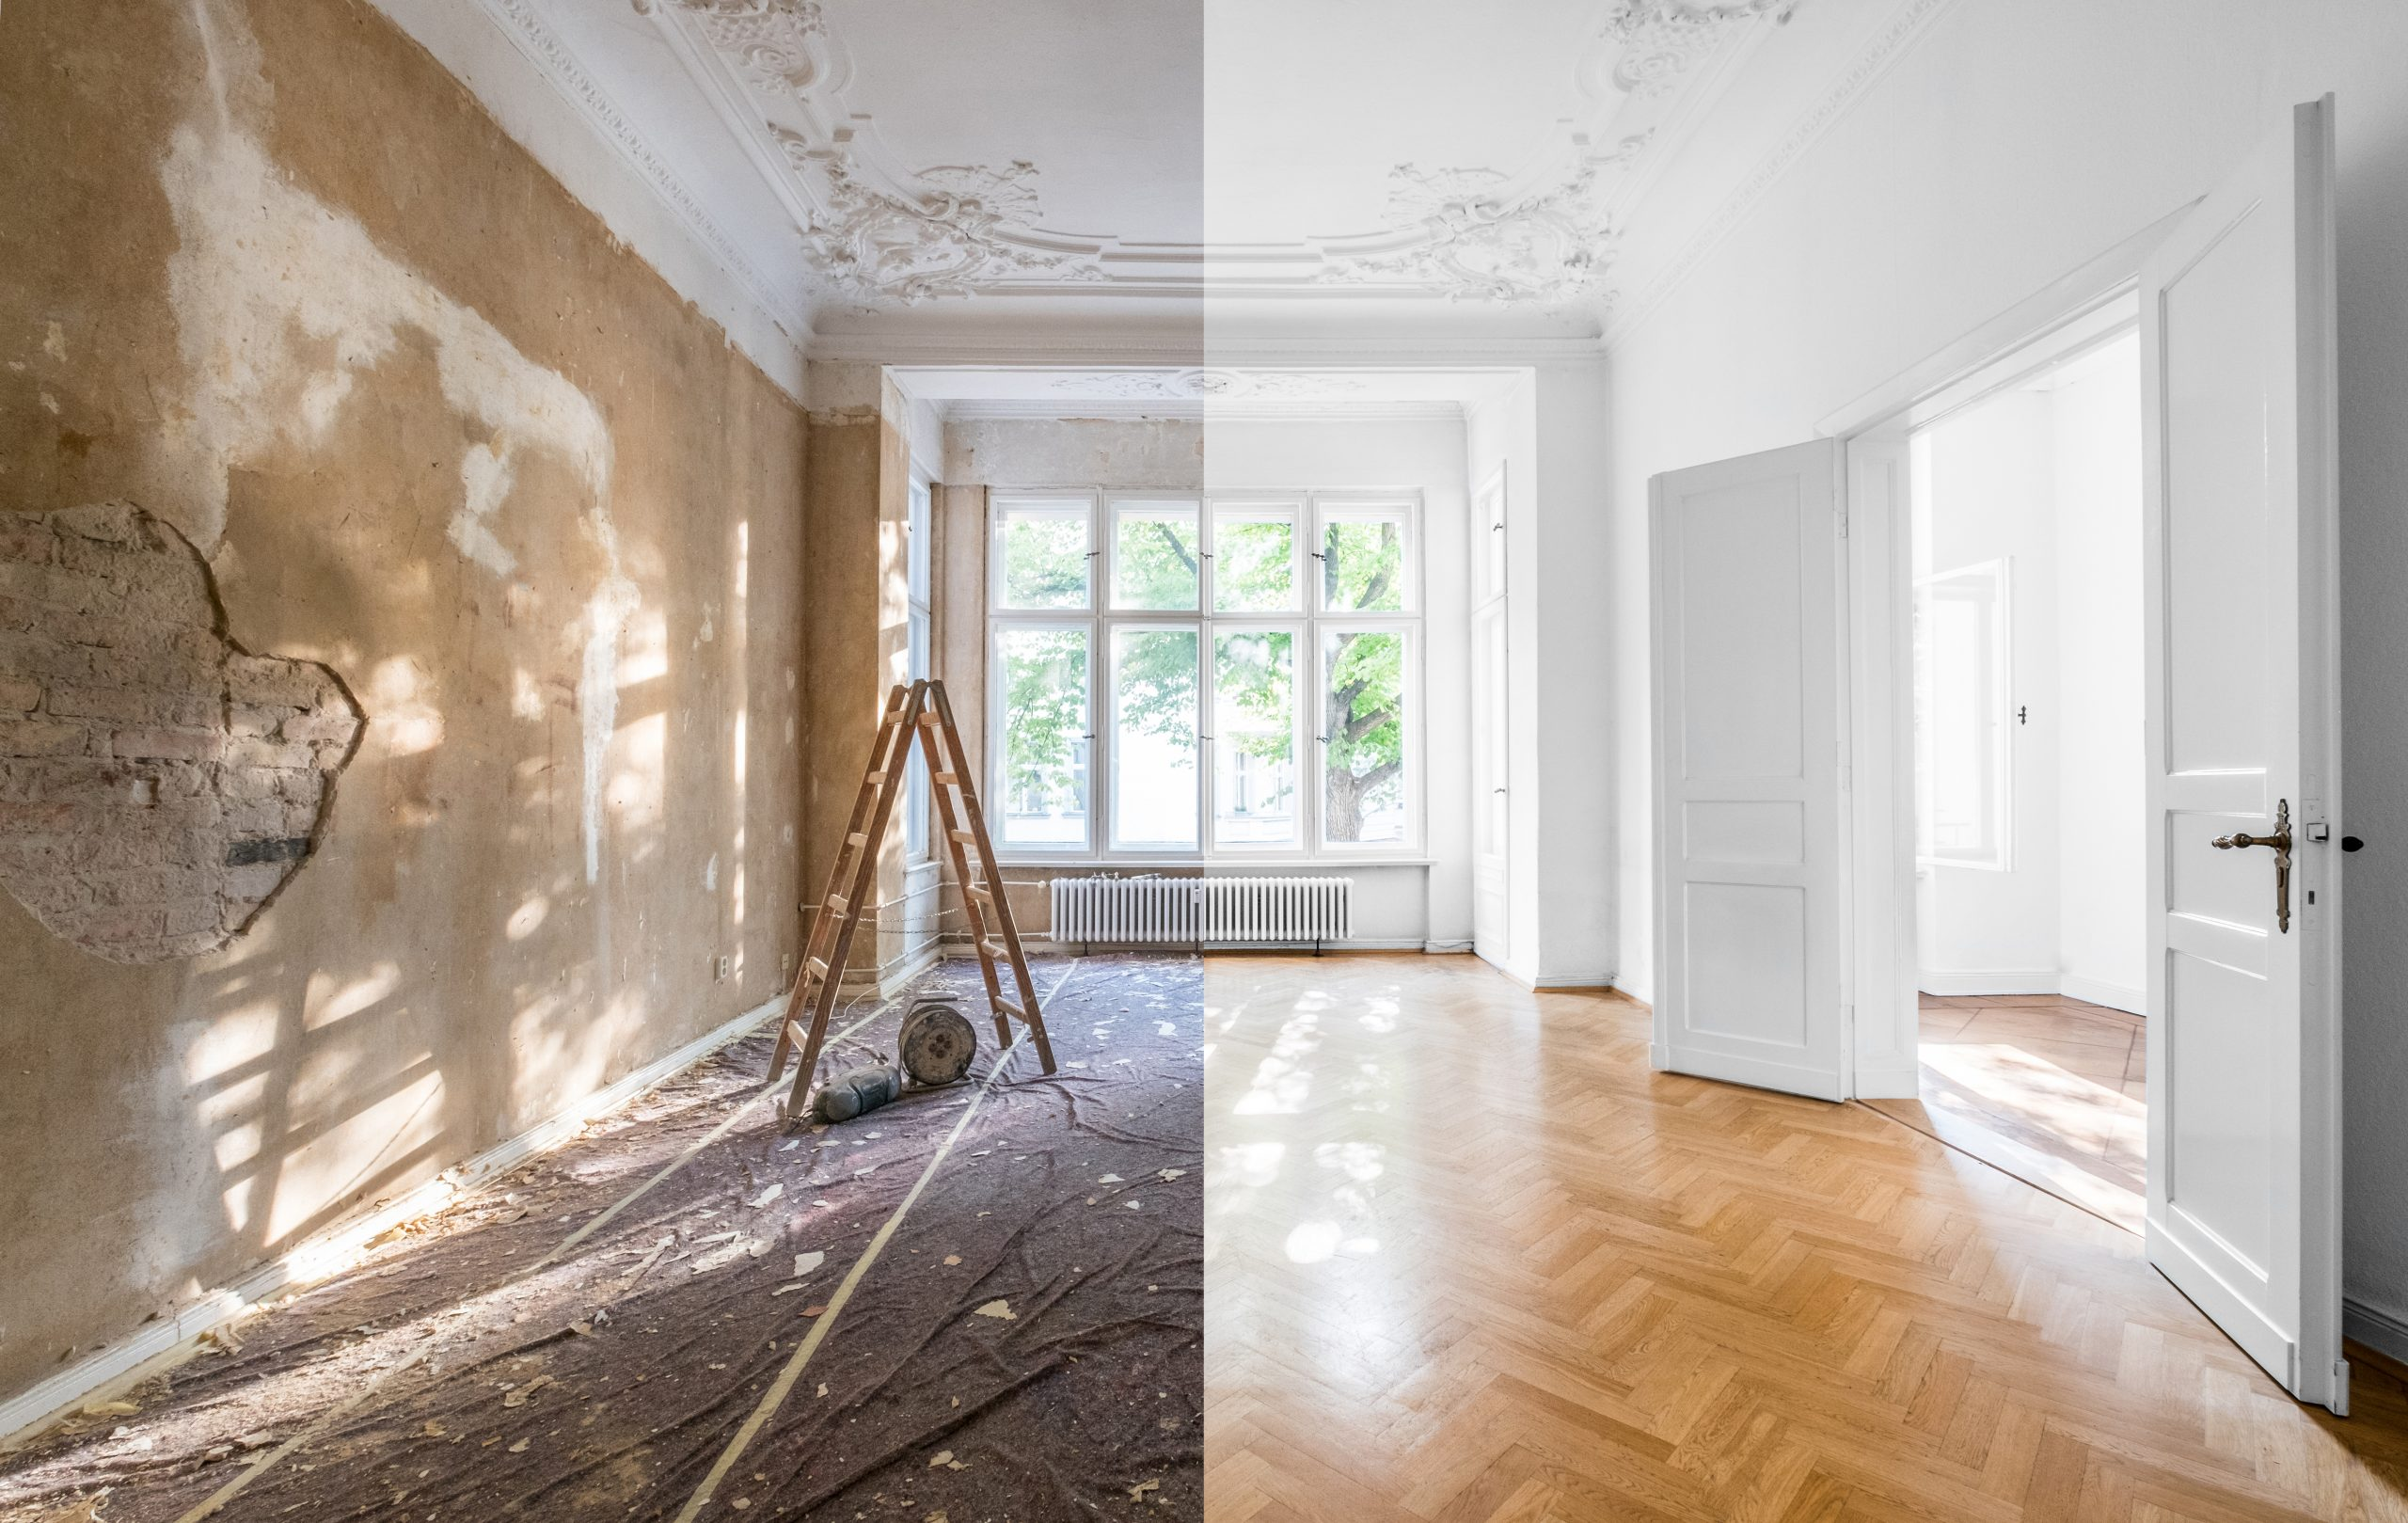 Things To Consider When Doing Home Renovations In An Old House